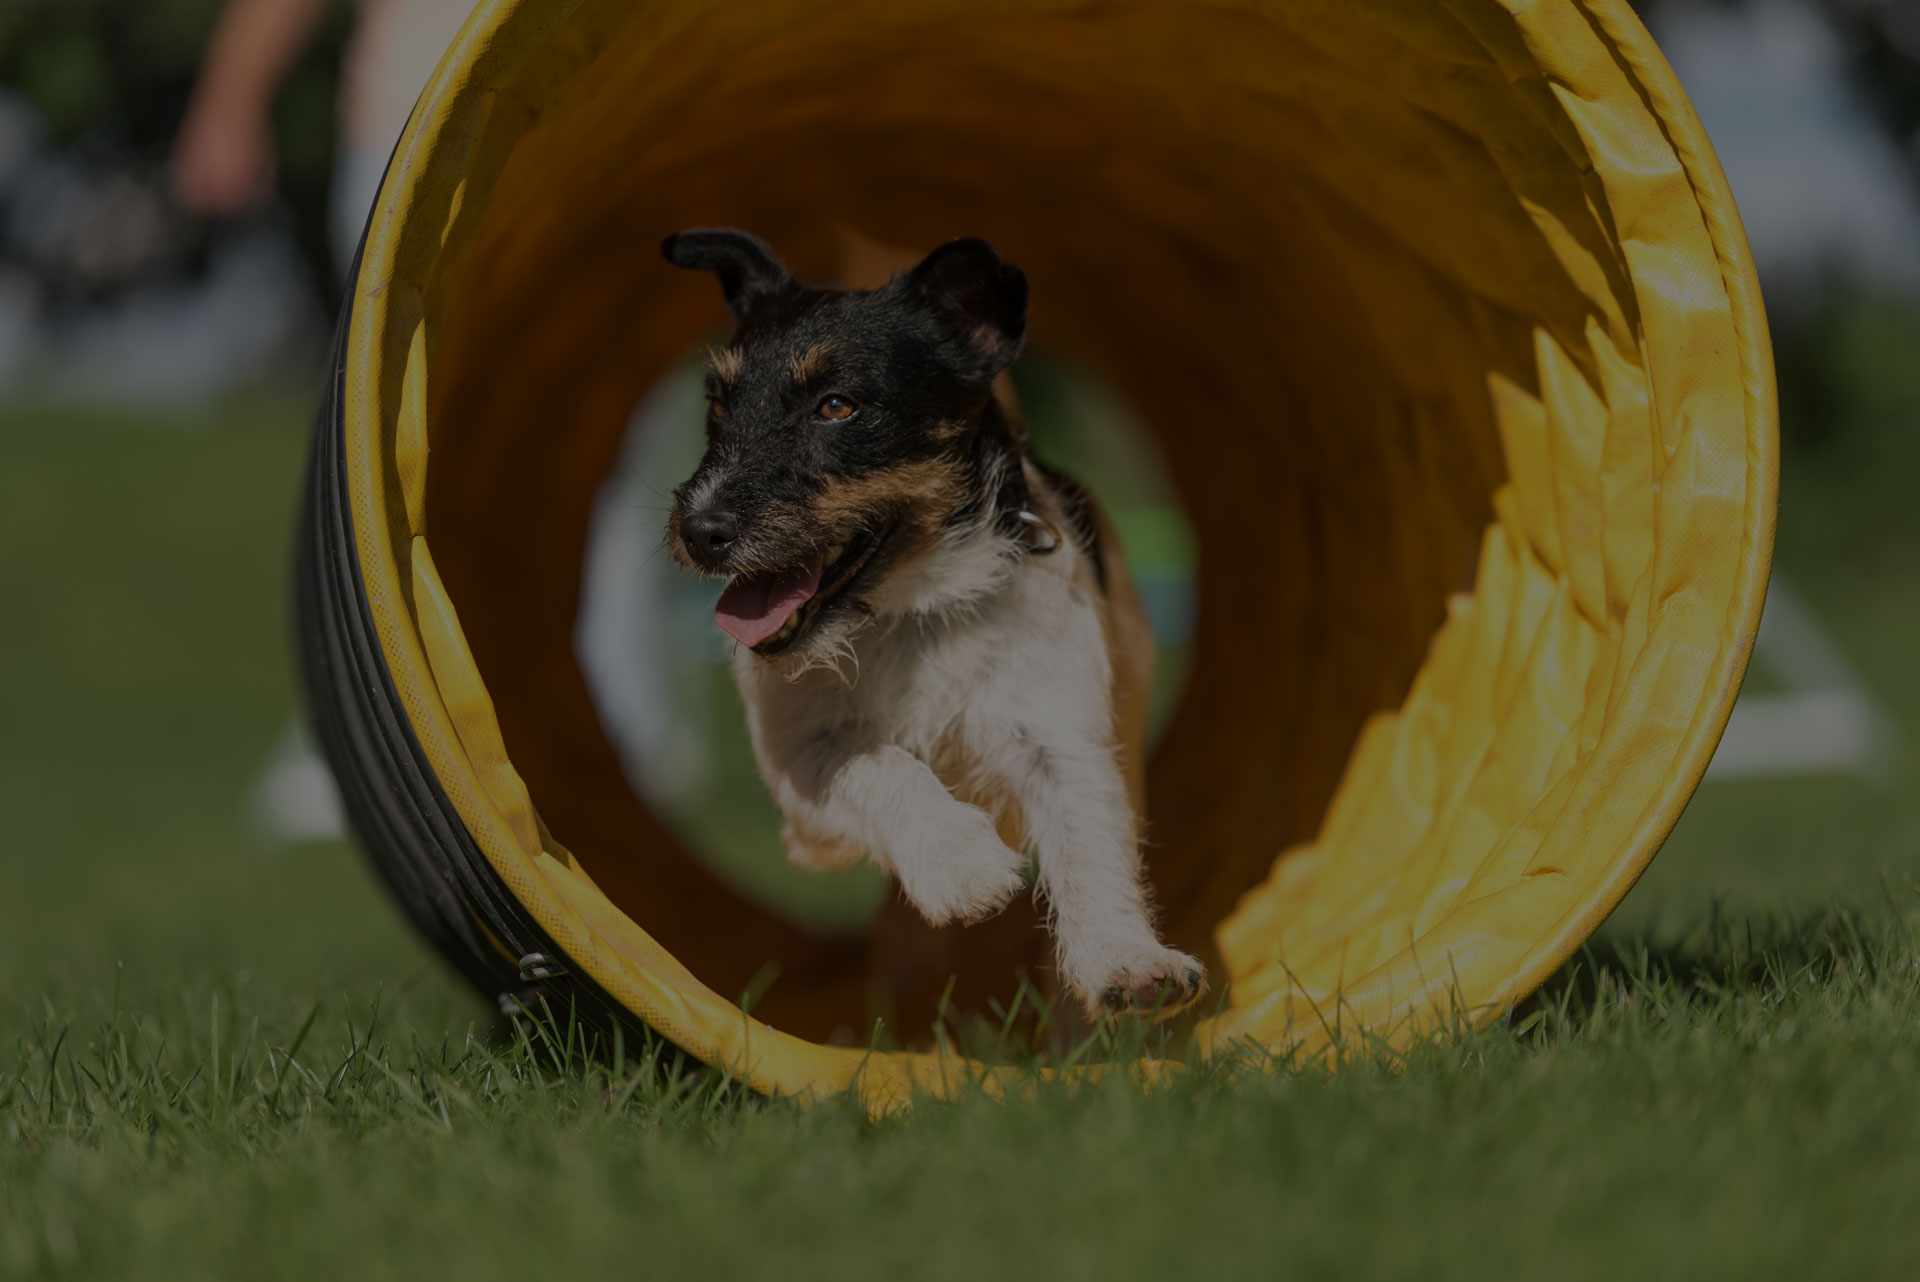 Dog runs through an agility tunnel - Jack Russell Terrier - Image